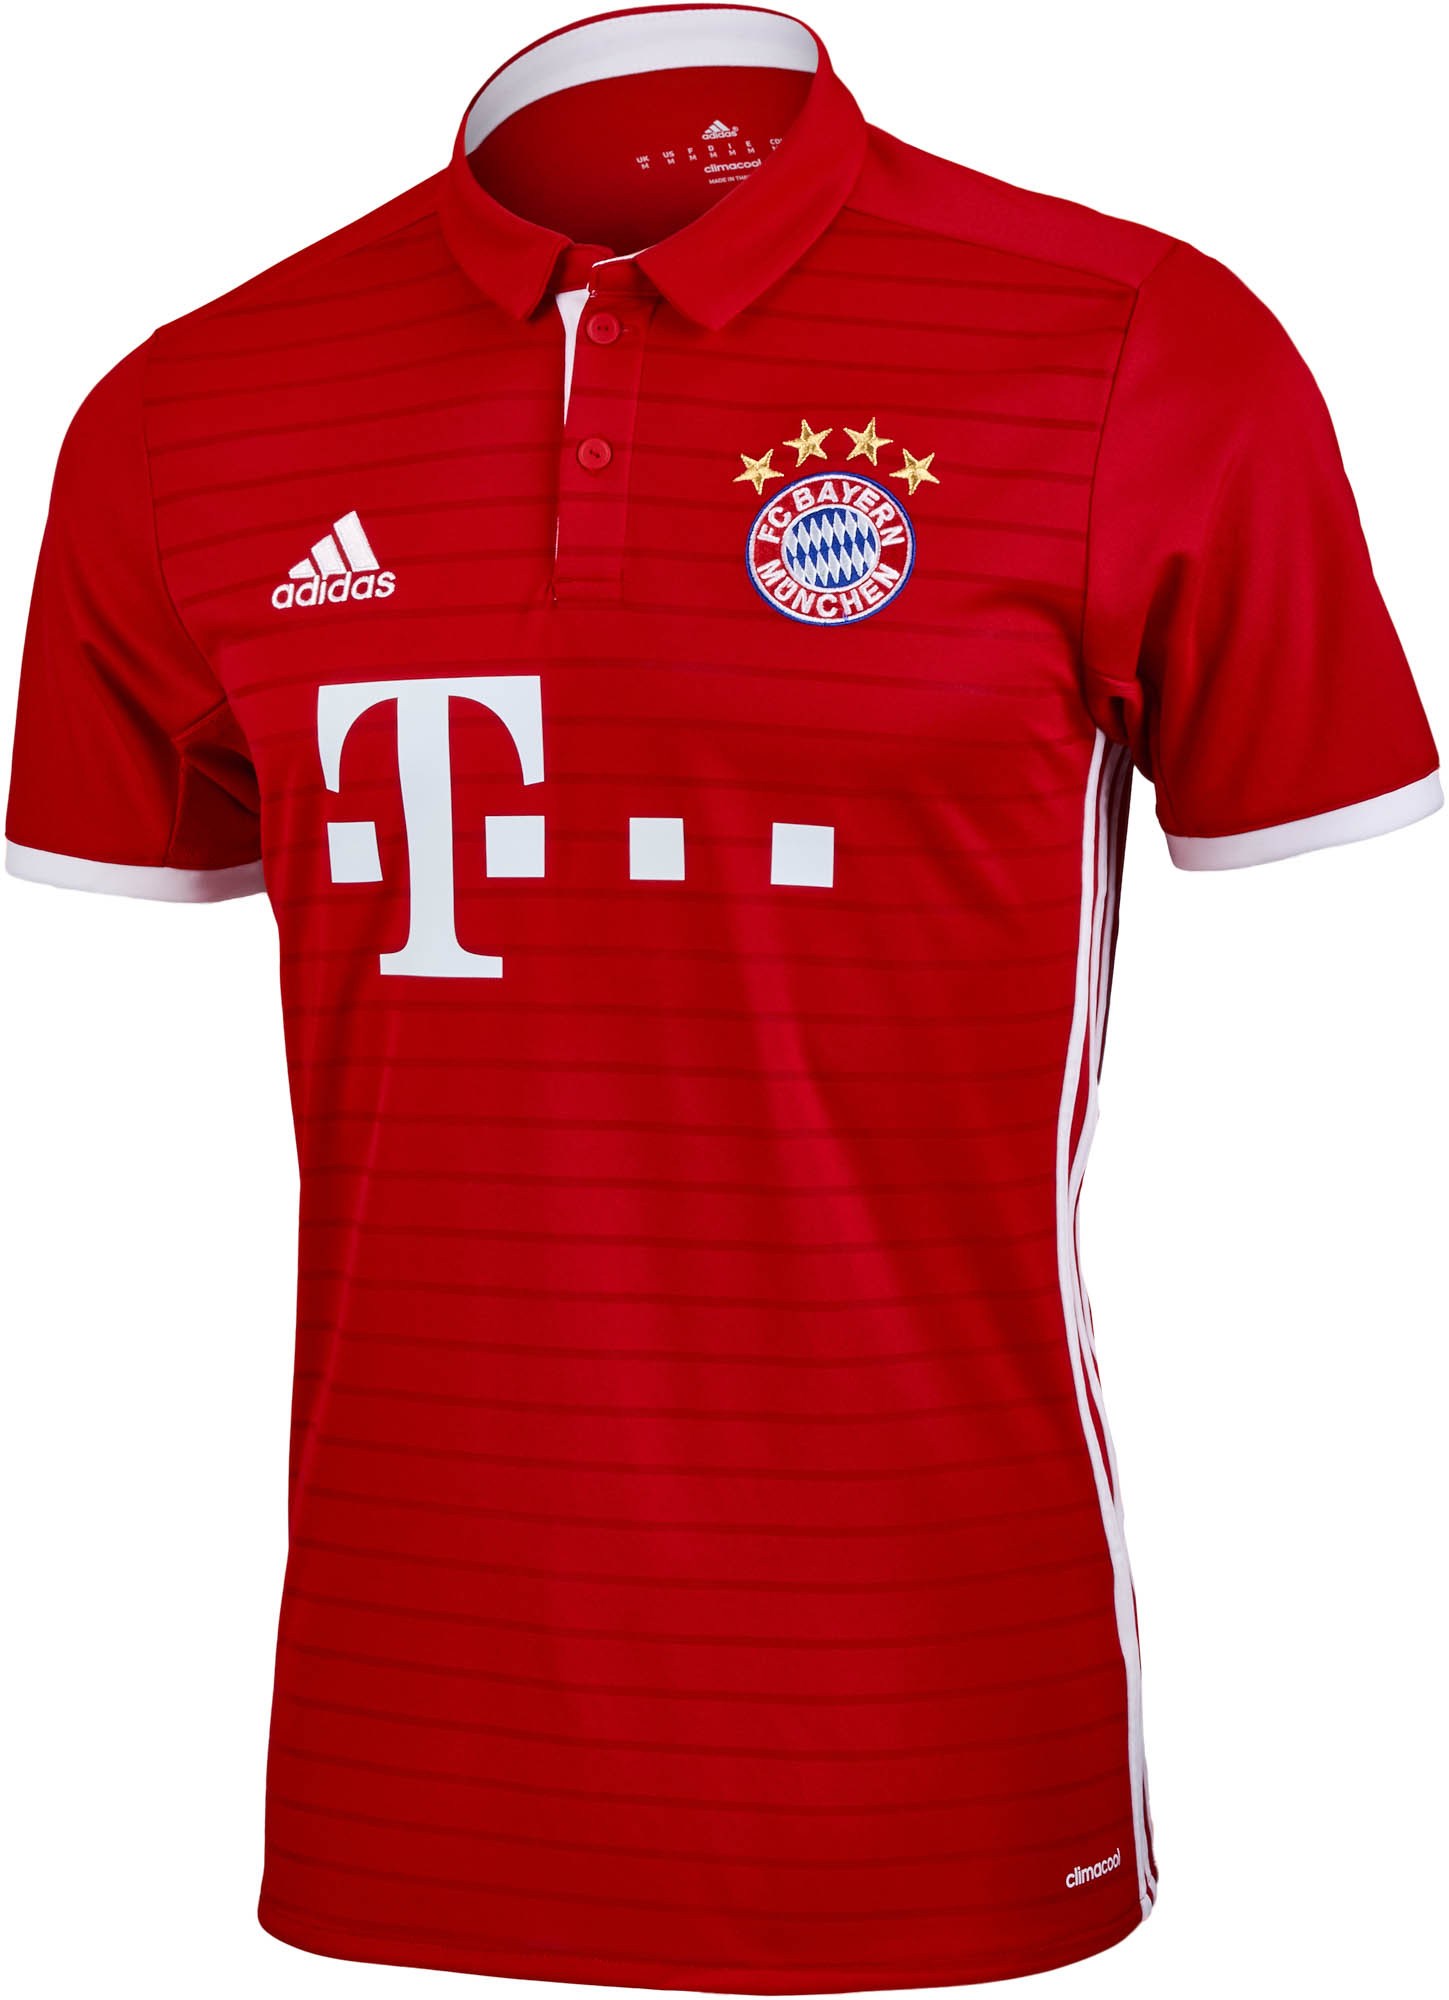 adidas bayern munich home jersey 2016 bayern munich jerseys. Black Bedroom Furniture Sets. Home Design Ideas